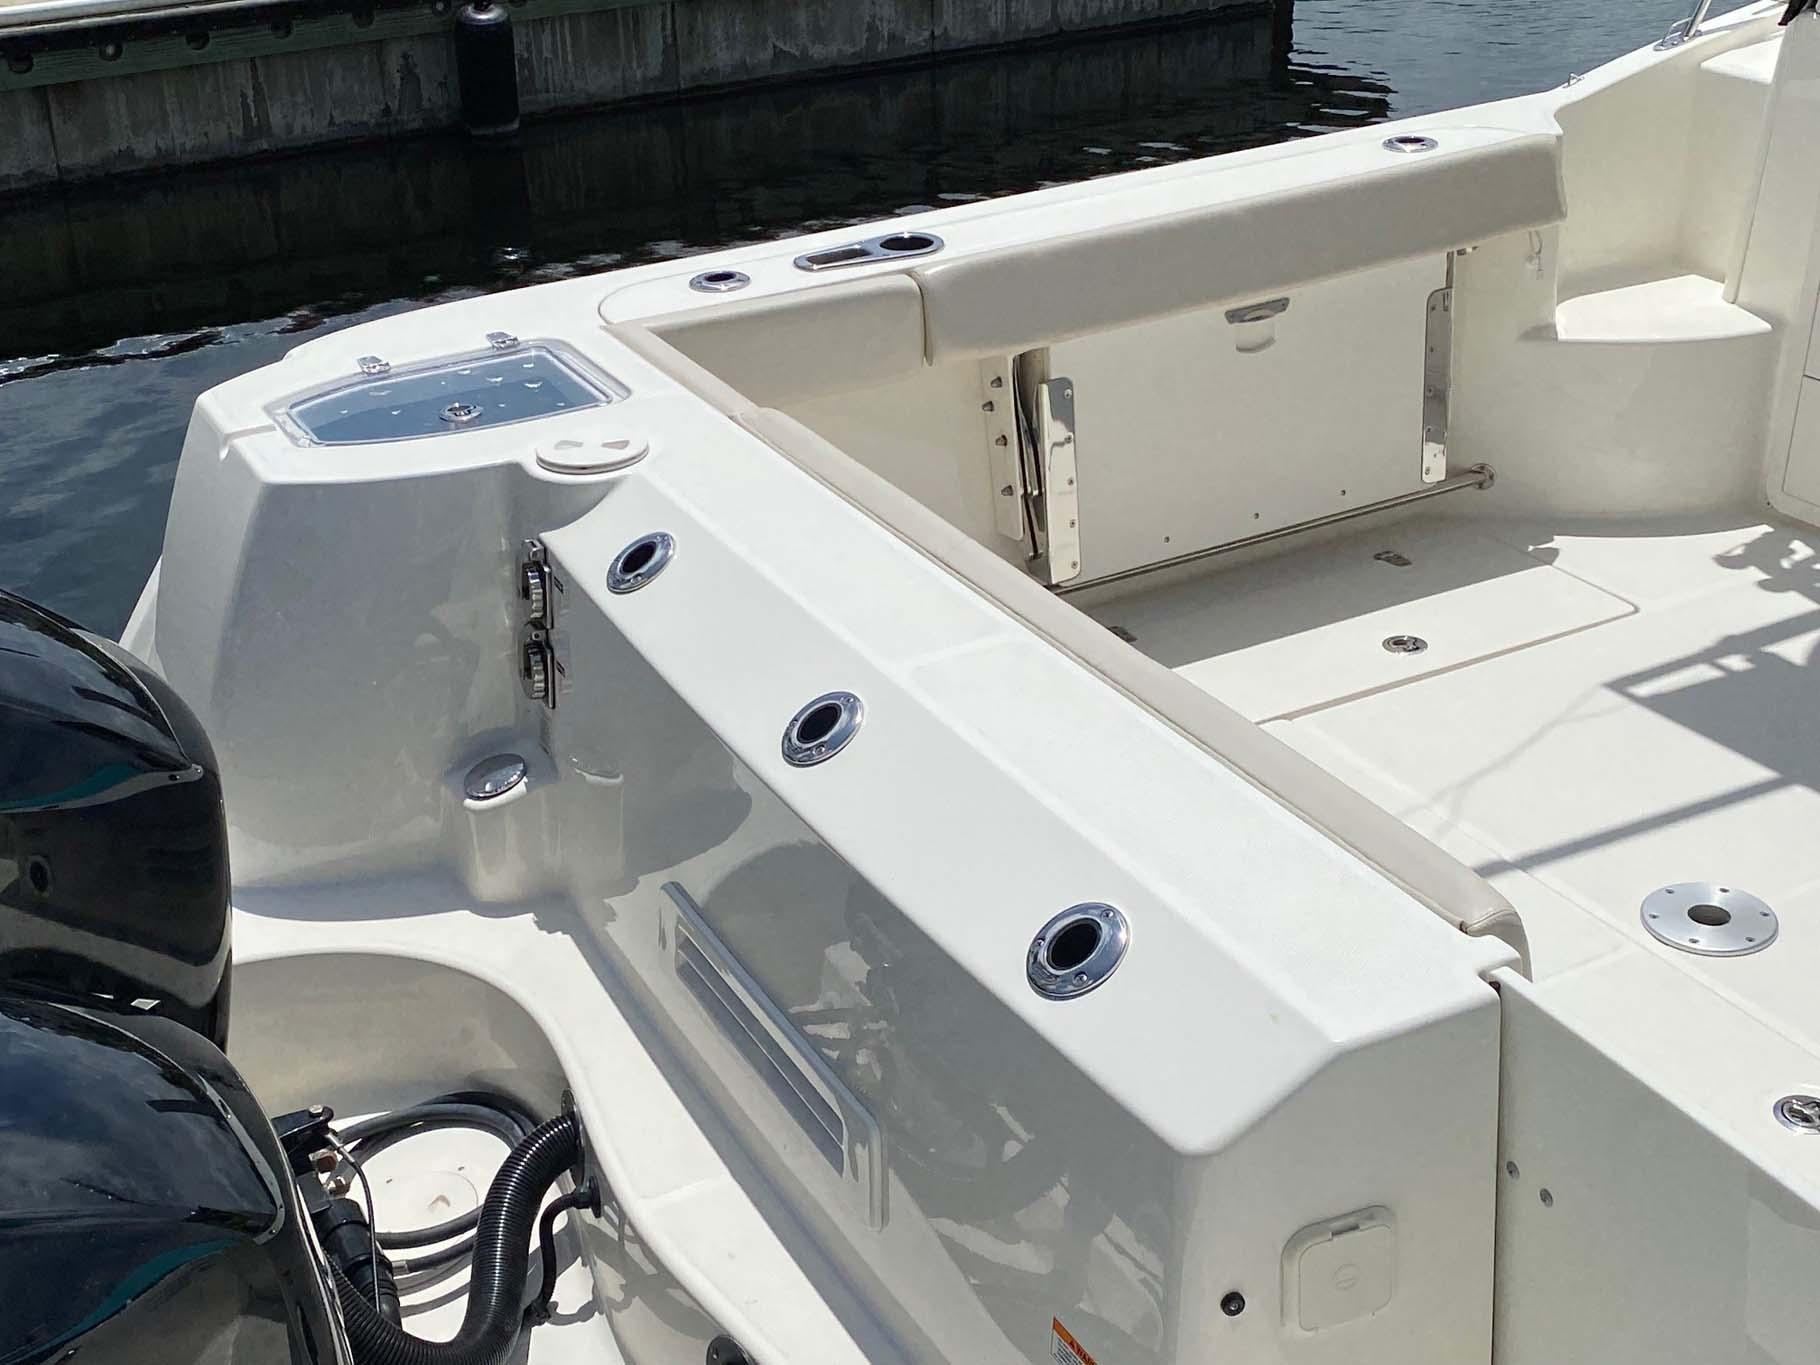 Port Seat Retracted and Transom